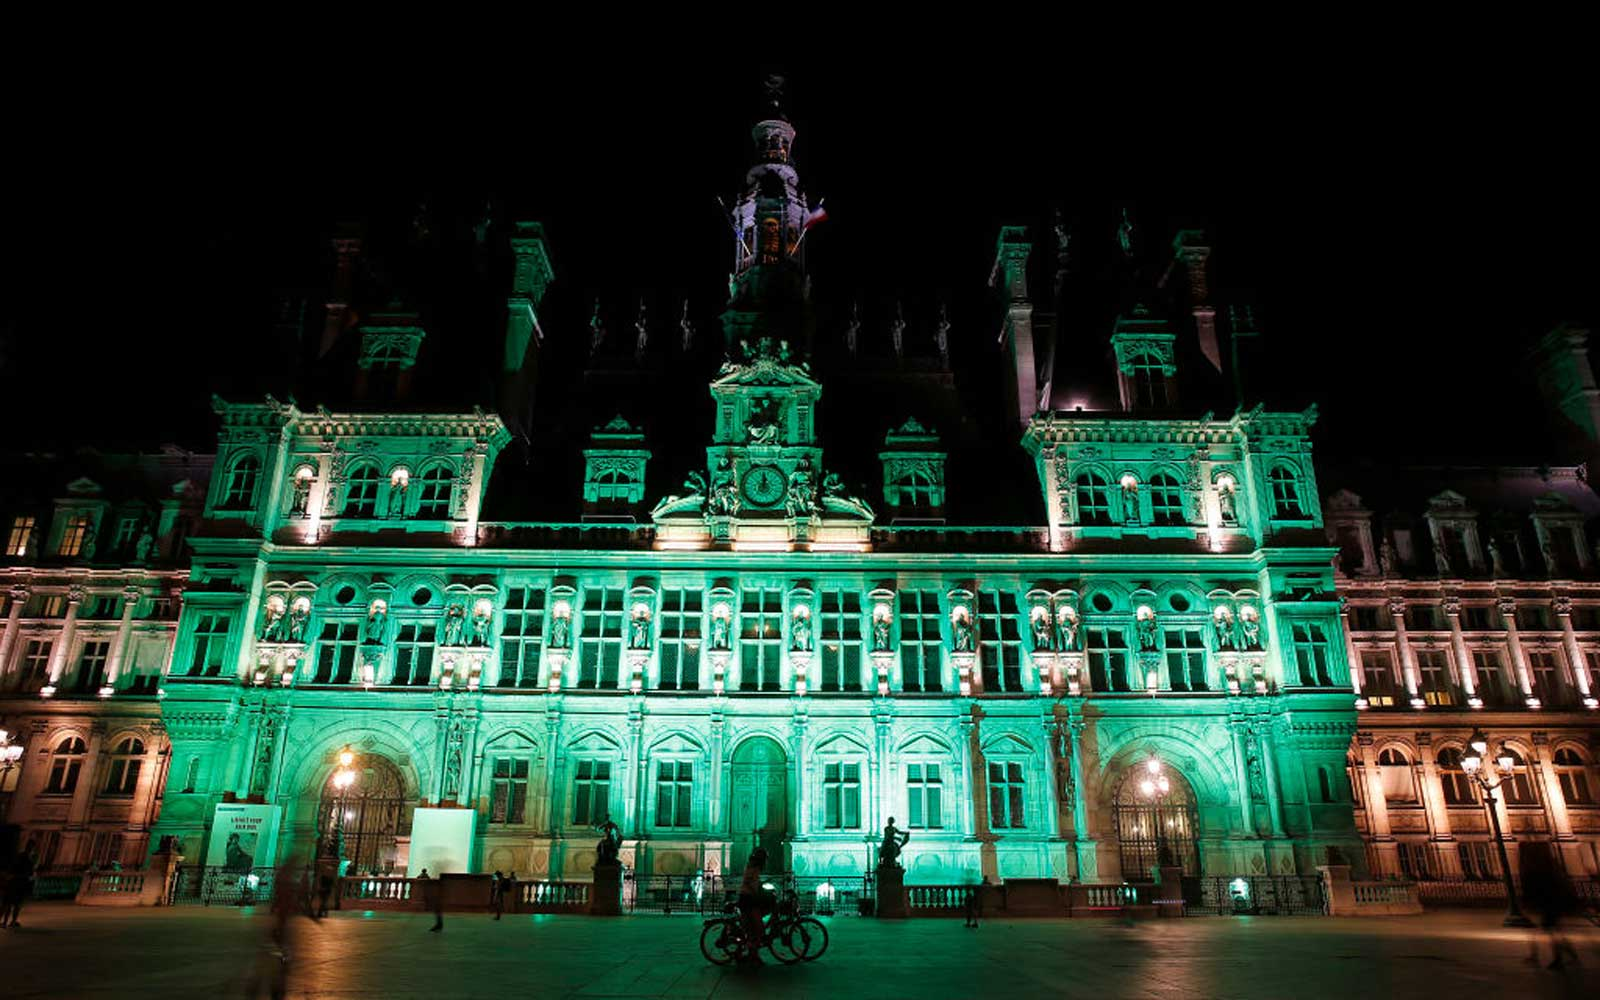 Landmarks around the world go green to show support for the Paris Climate Accord